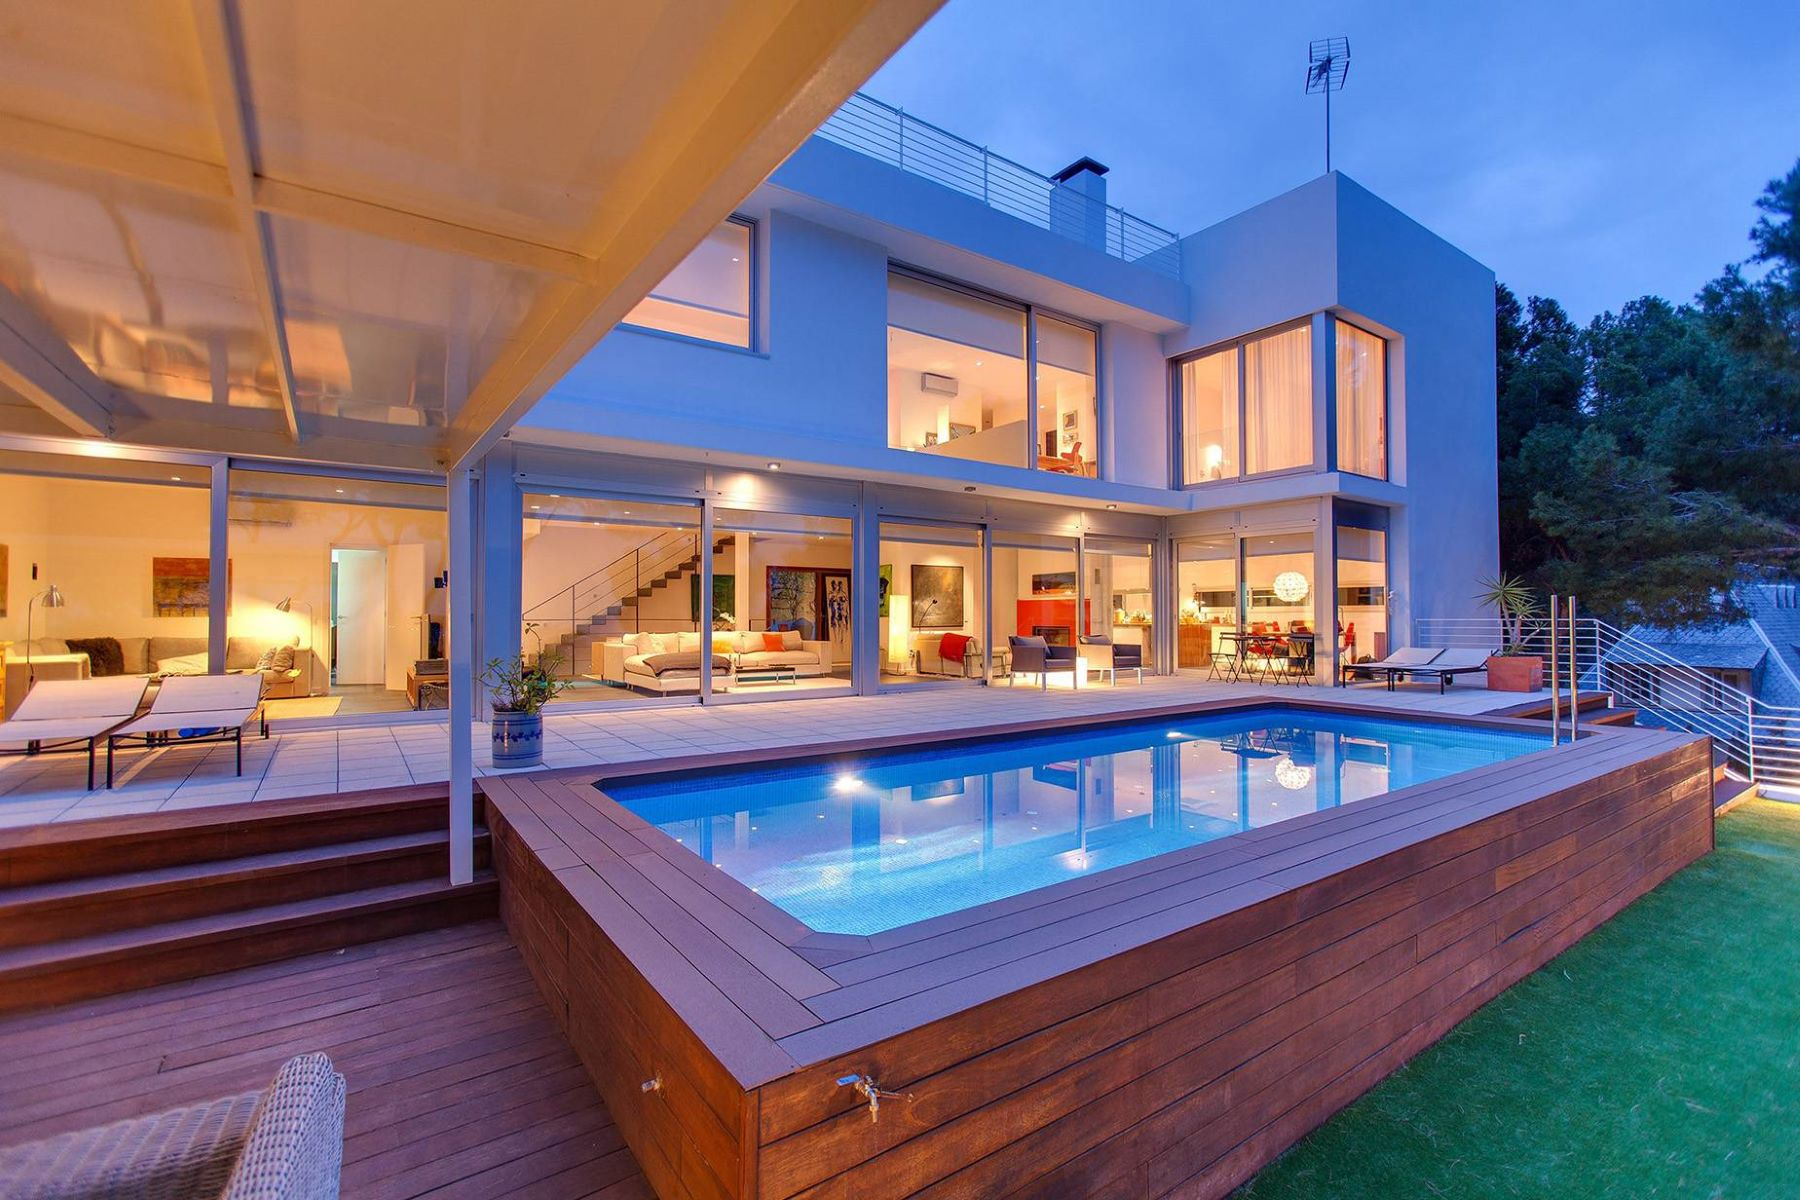 Single Family Home for Sale at A Modern House in Castelldefels Castelldefels, Barcelona, 08866 Spain